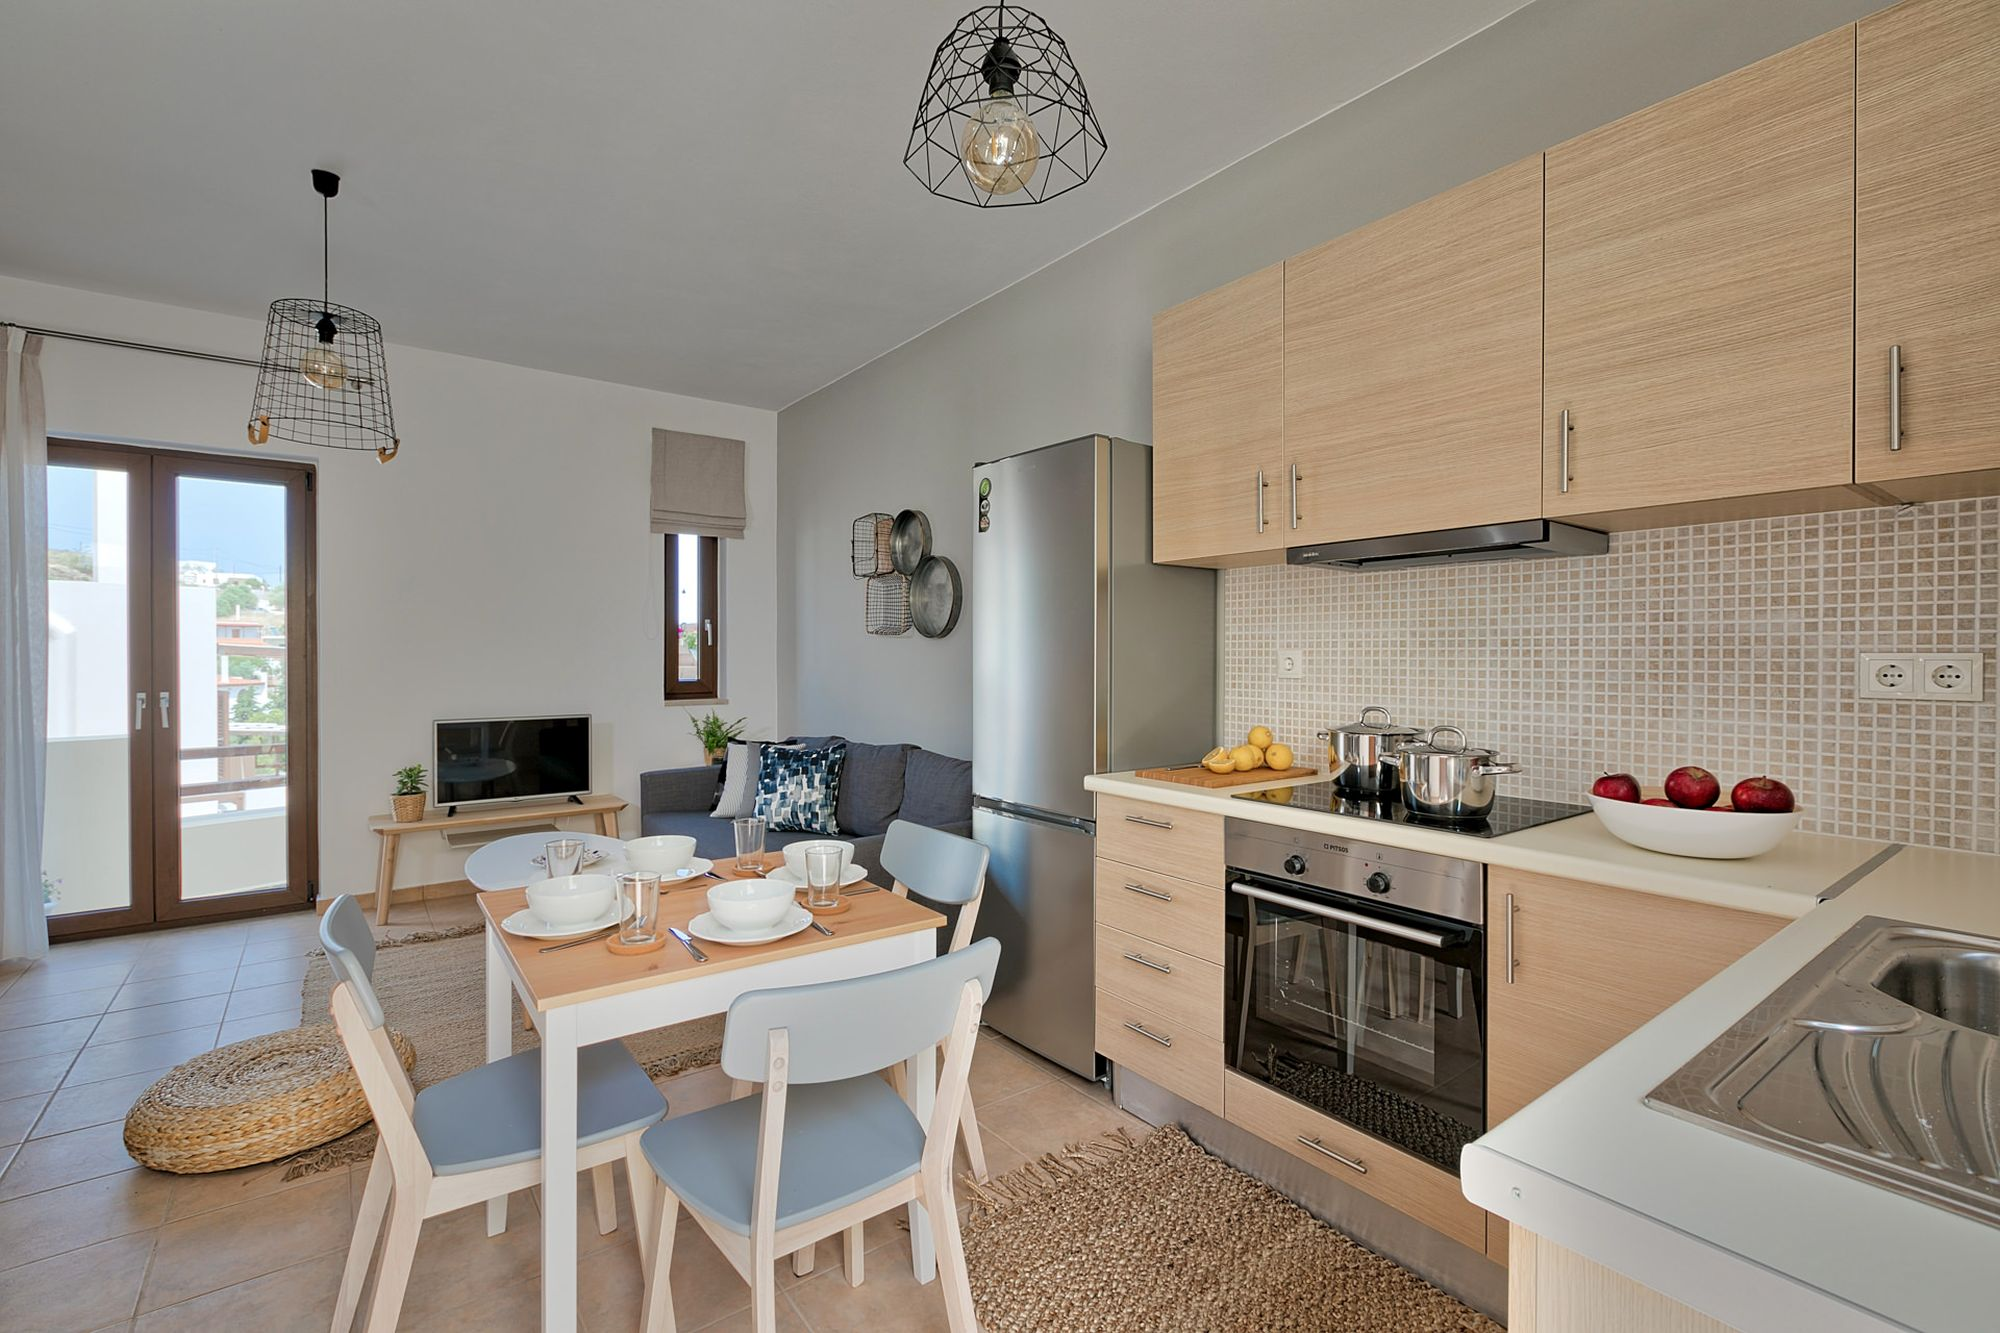 In open space with the living room, a fully equipped kitchen with an inox fridge, an electric cooker oven and a dining table with modern white dinnerware on it.